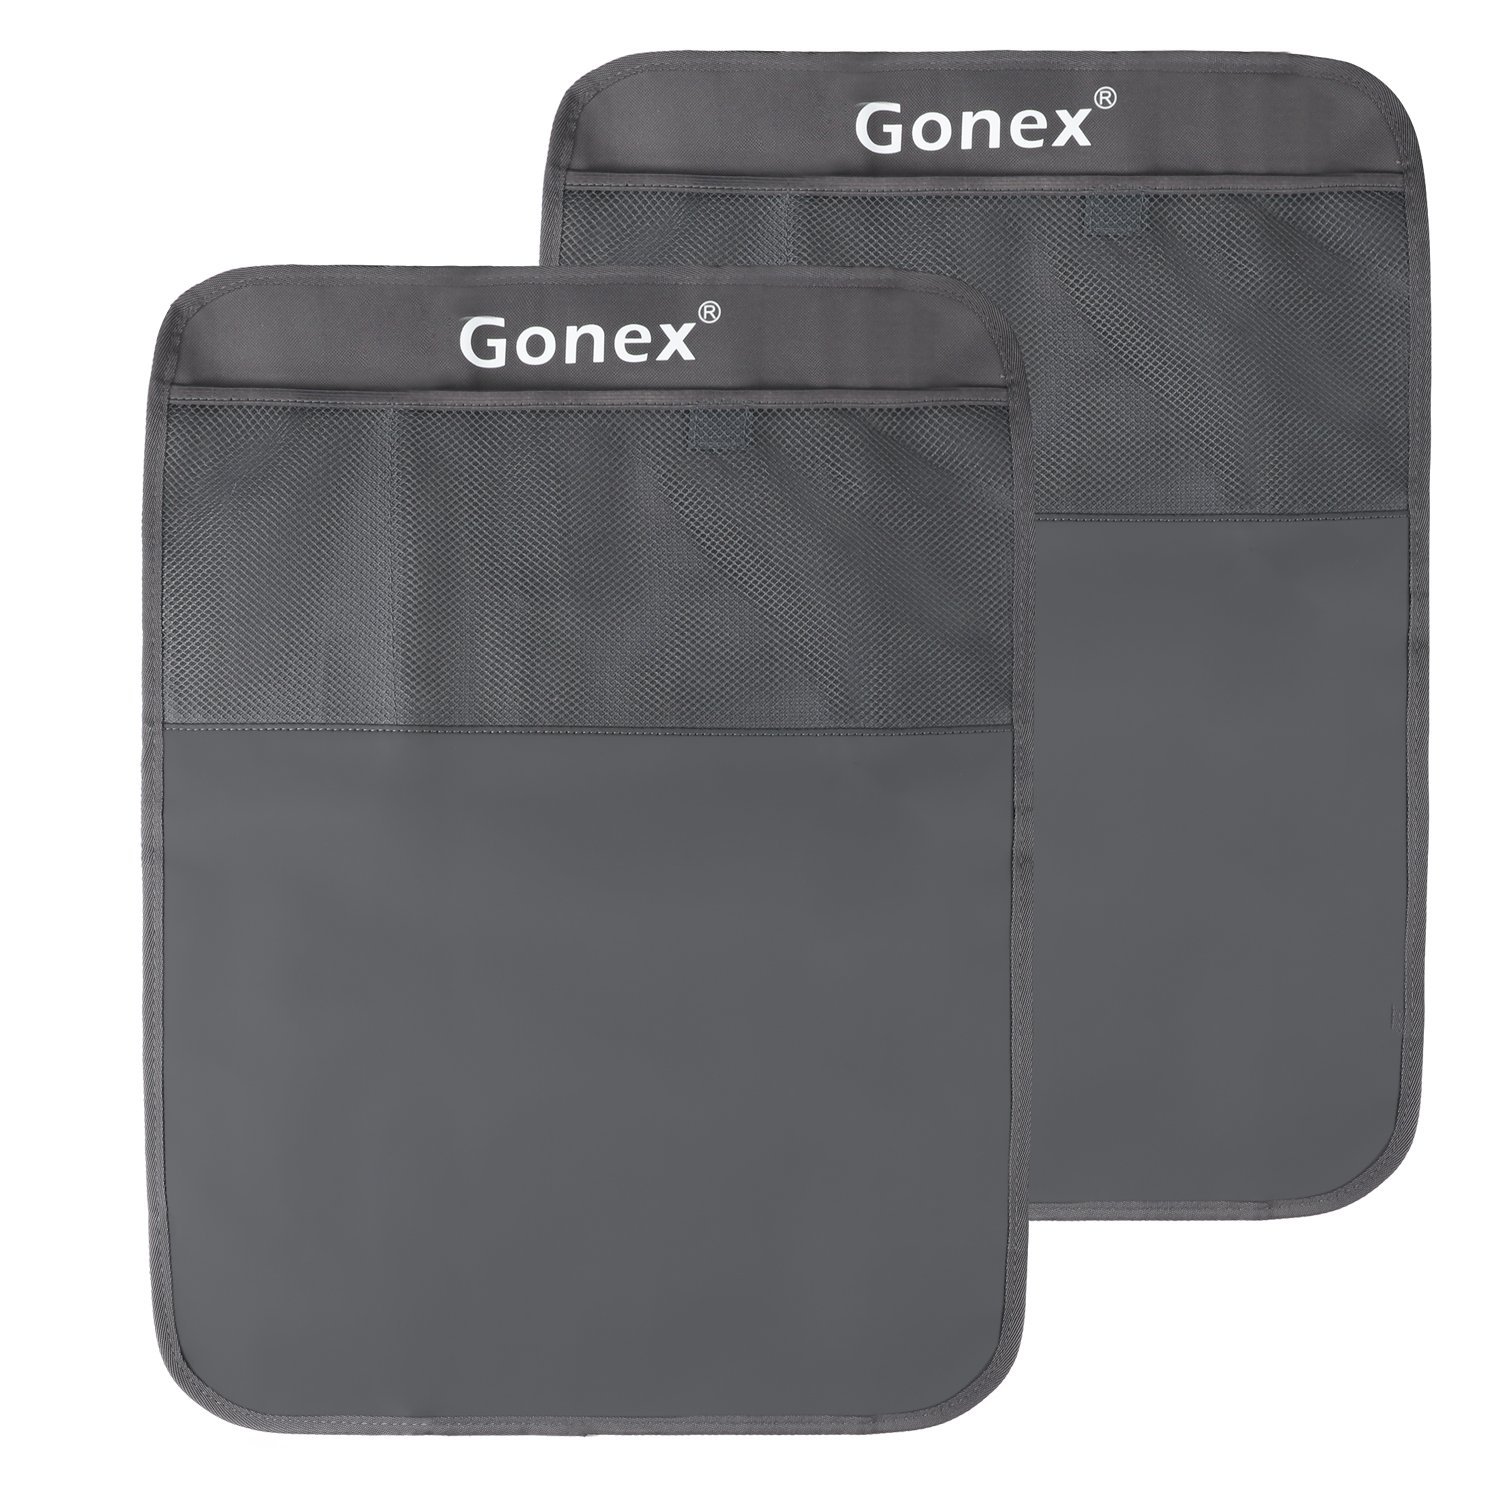 2 Packs Kick Mats for Backseat, Gonex Back Seat Protector with Organizer Waterproof PVC Material (Grey)